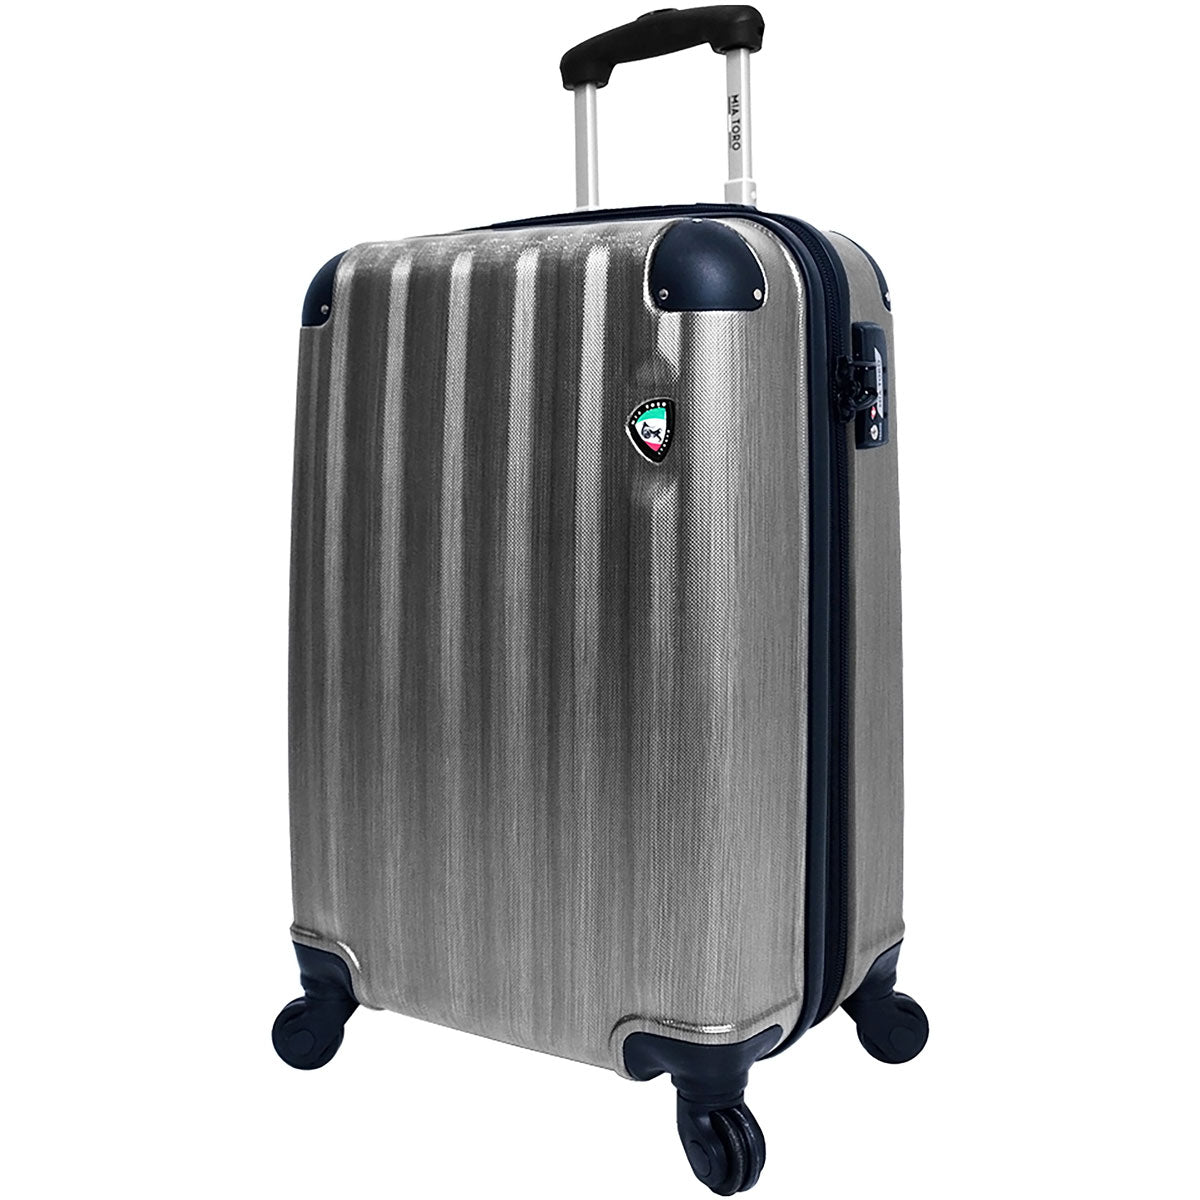 Mia Toro Lega Spazzolato Hardside 25in Spinner - Luggage Factory